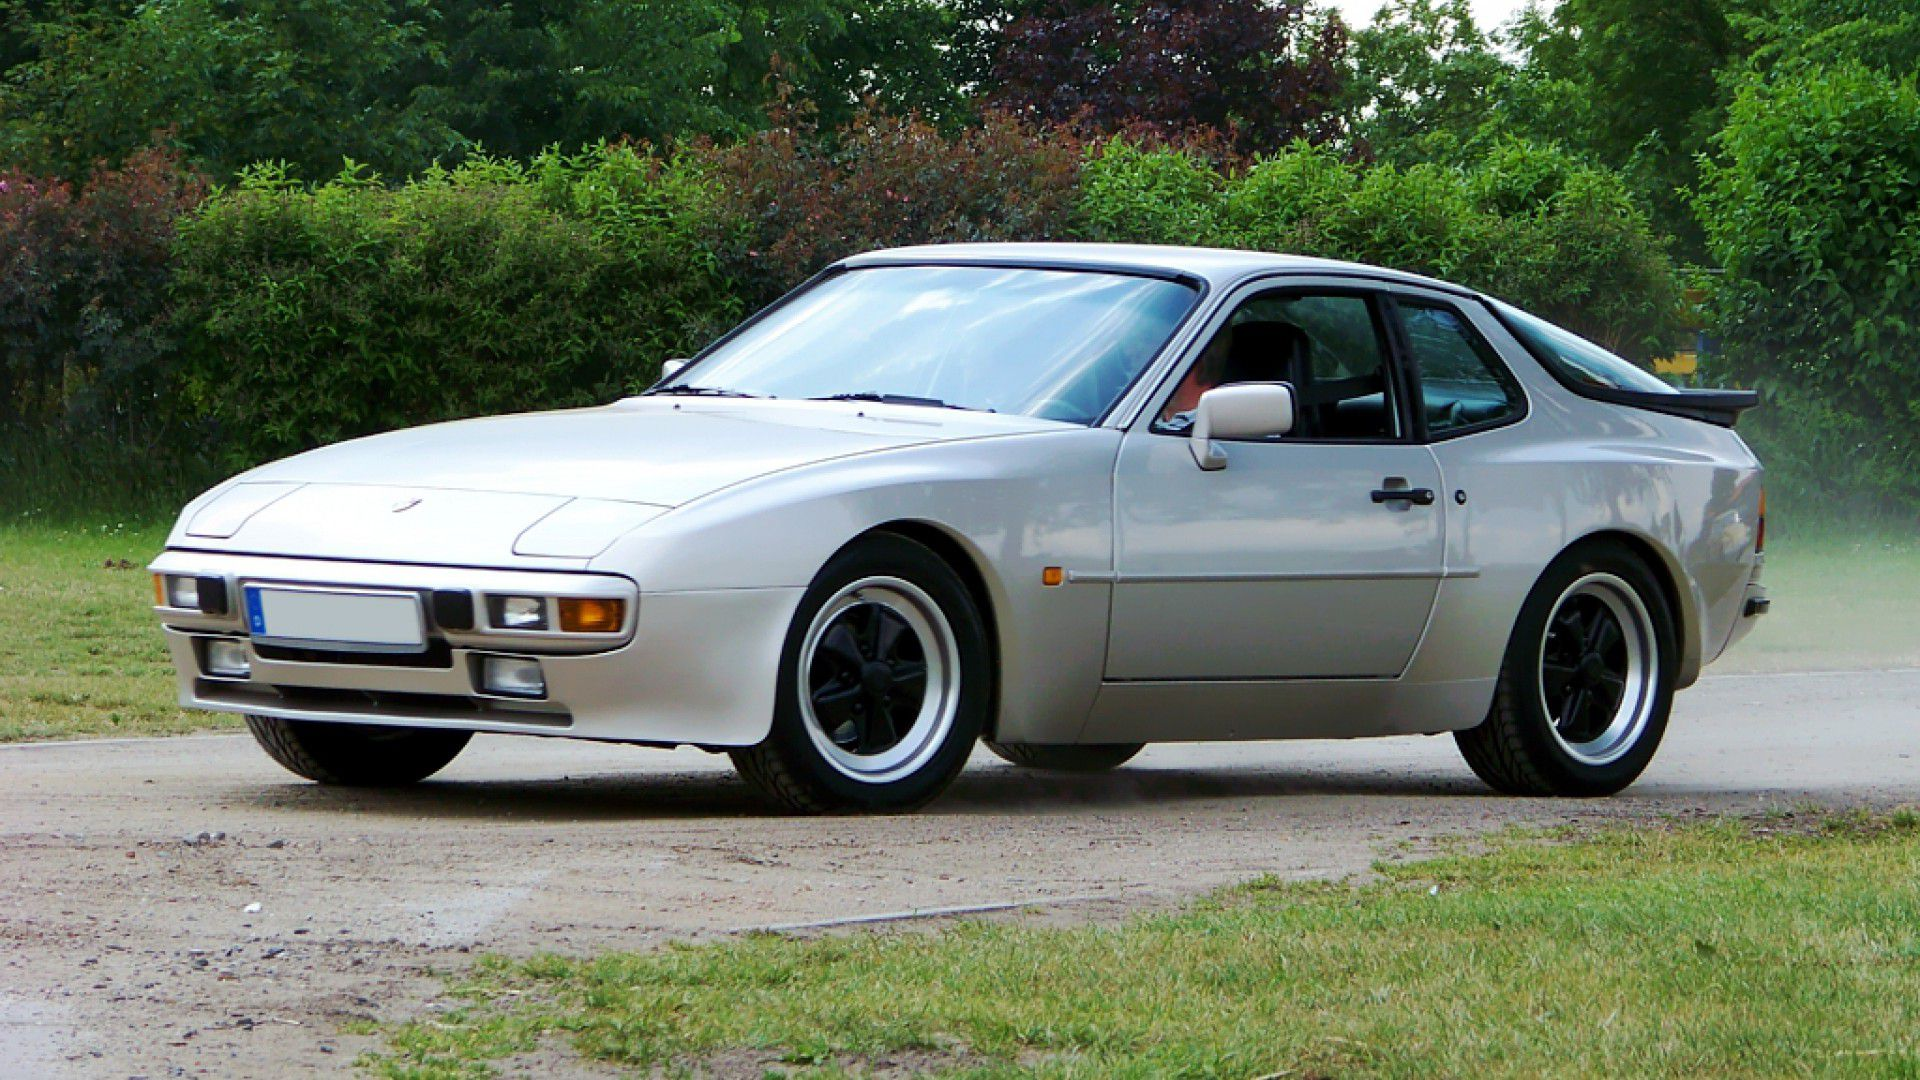 Porsche 944 187 Definitive List Cars